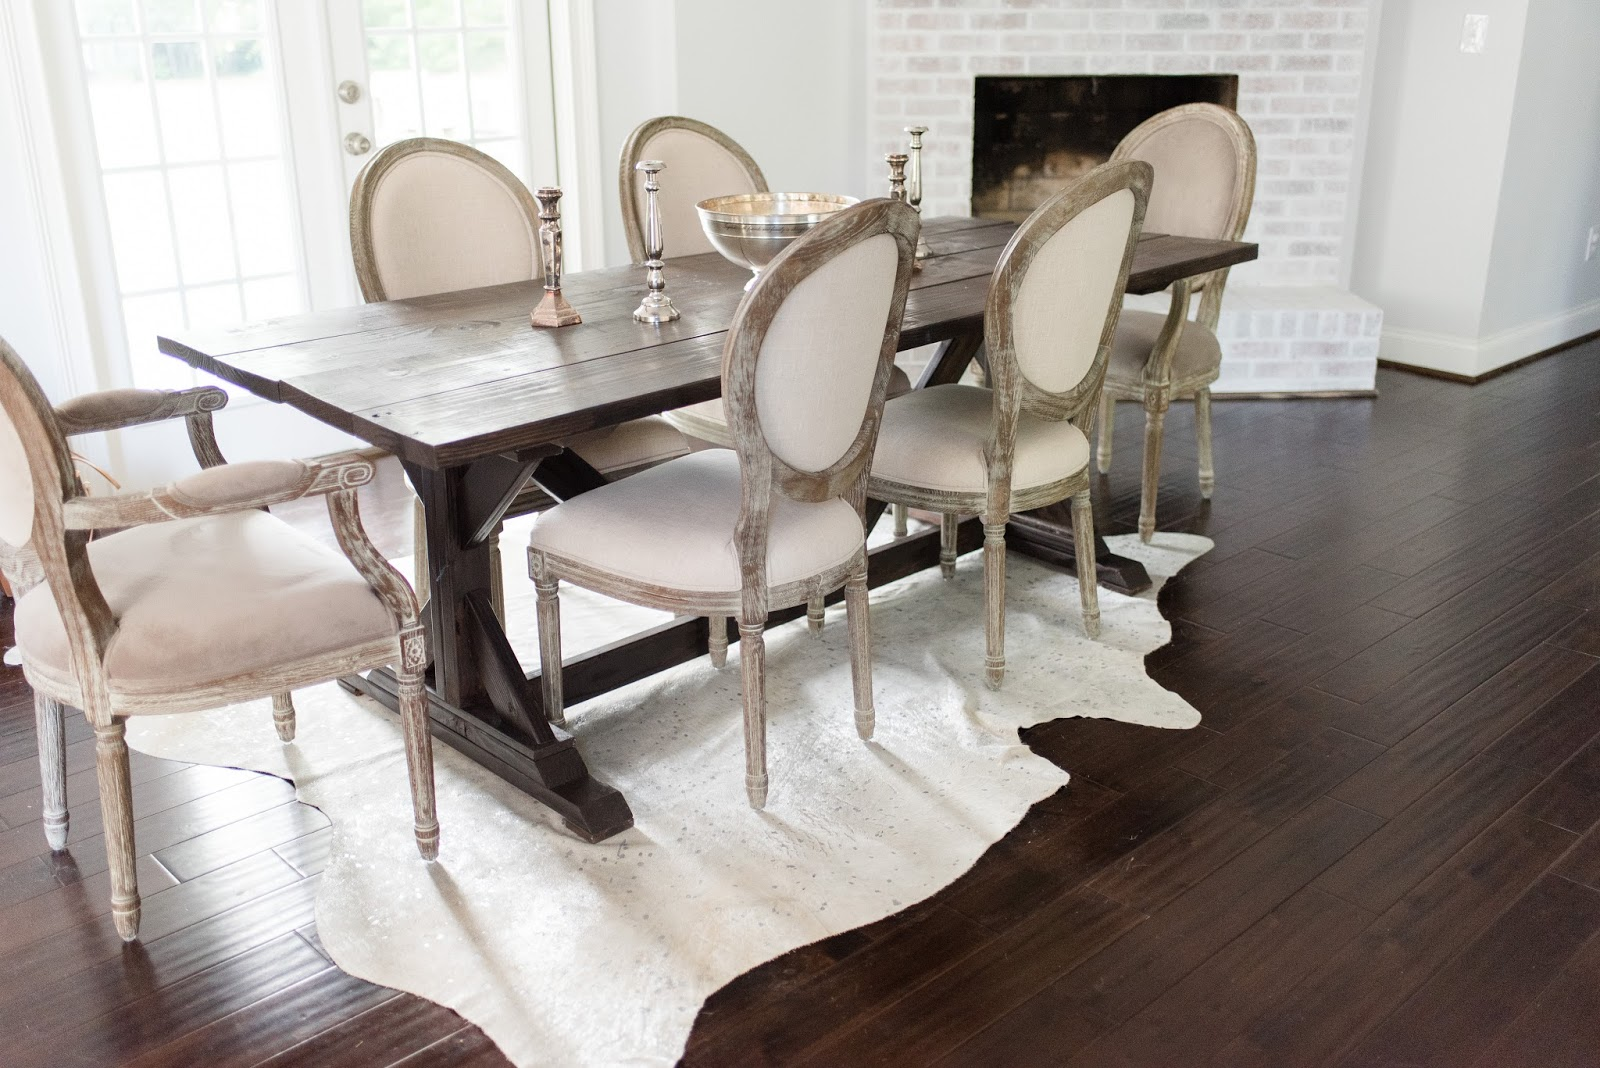 Different colored dining chairs - If You Look Closely You Can See That The Fabric Of The Chairs Is Actually Two Different Colors The Arm Chairs Are Grey Velvet And The Middle Seats Are An